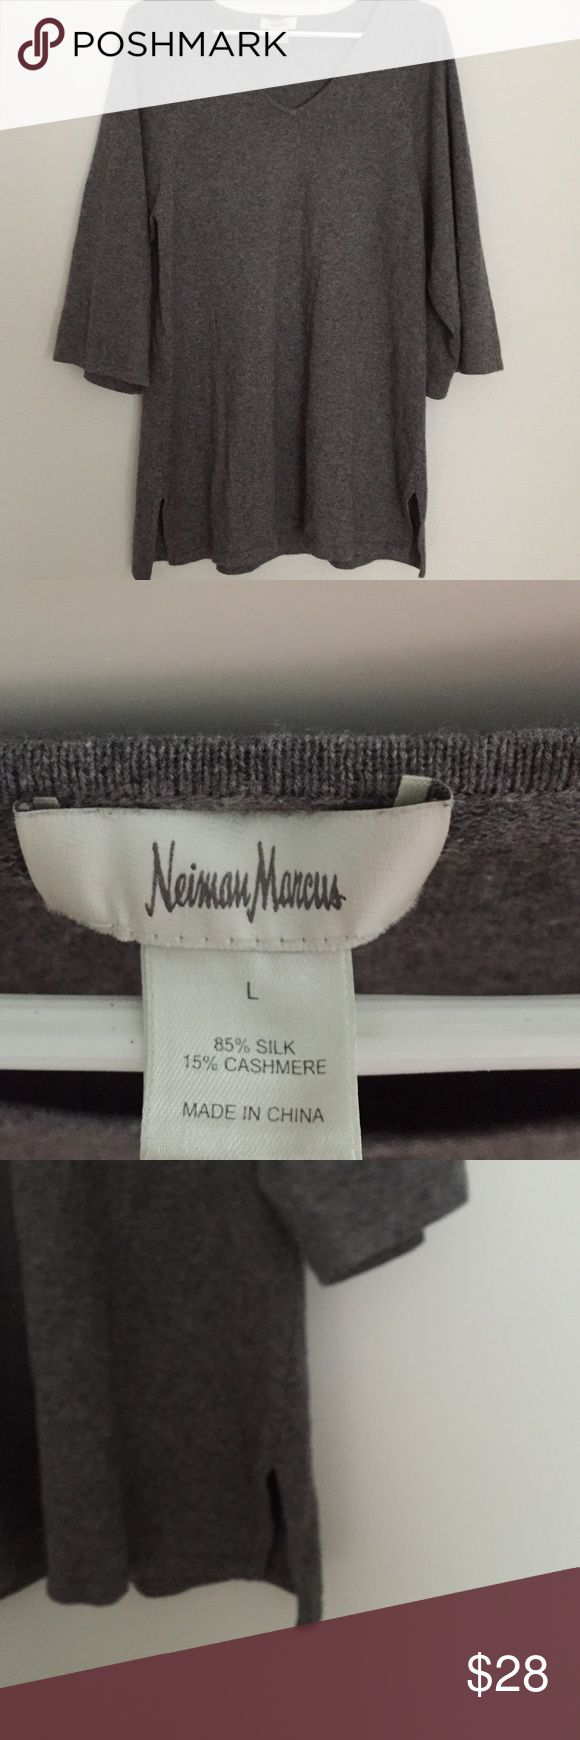 Neiman Marcus V Neck Sweater Great piece to add to any wardrobe! Sweater is V neck. Only worn a handful of times. Has side slits. Silk and Cashmere. Comes from a smoke free, pet free home. Neiman Marcus Sweaters V-Necks